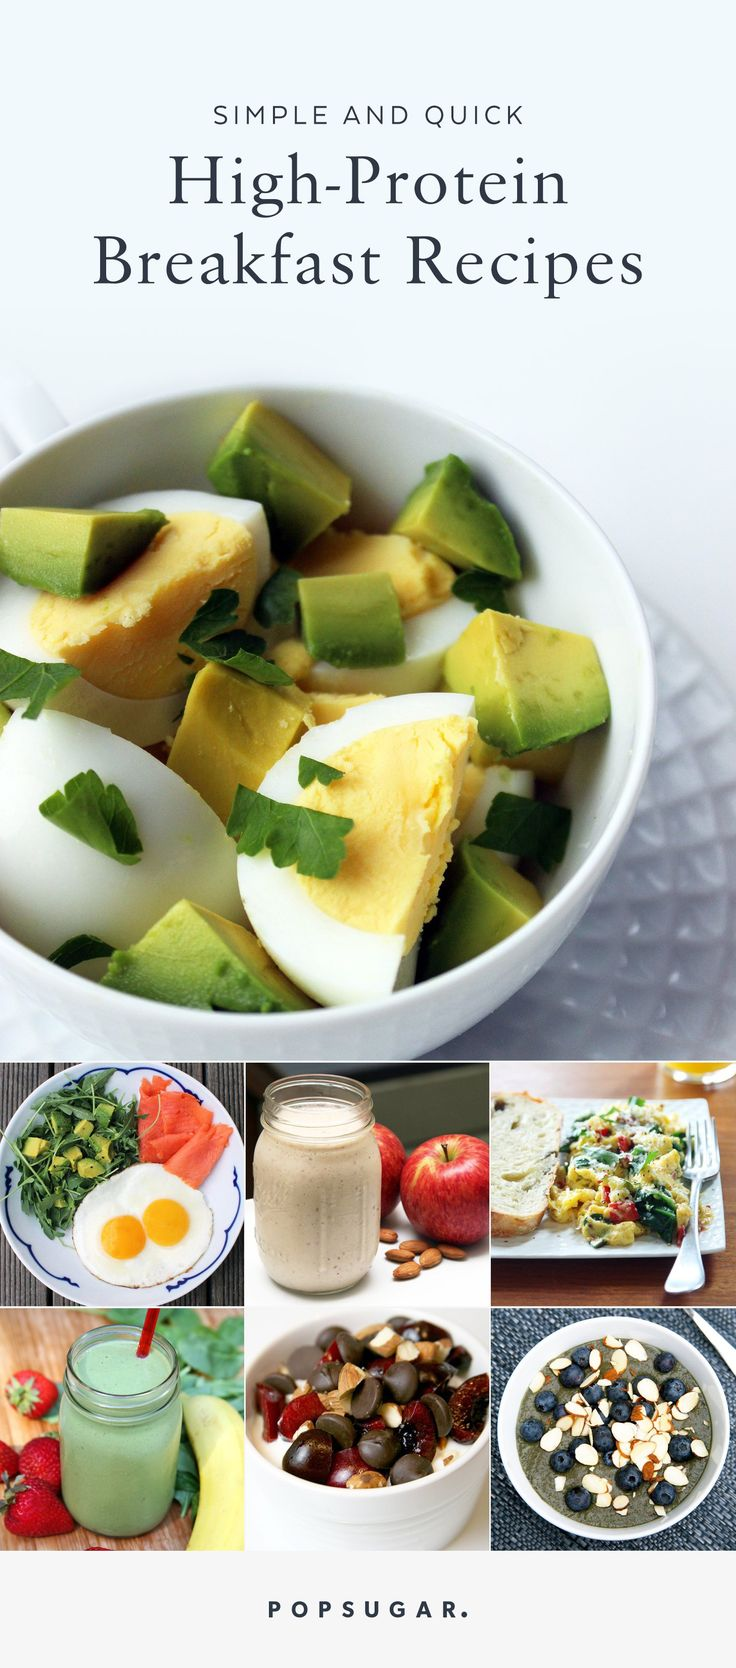 21 High-Protein Breakfasts That Barely Take Any Time to Prepare --- Popsugar ---